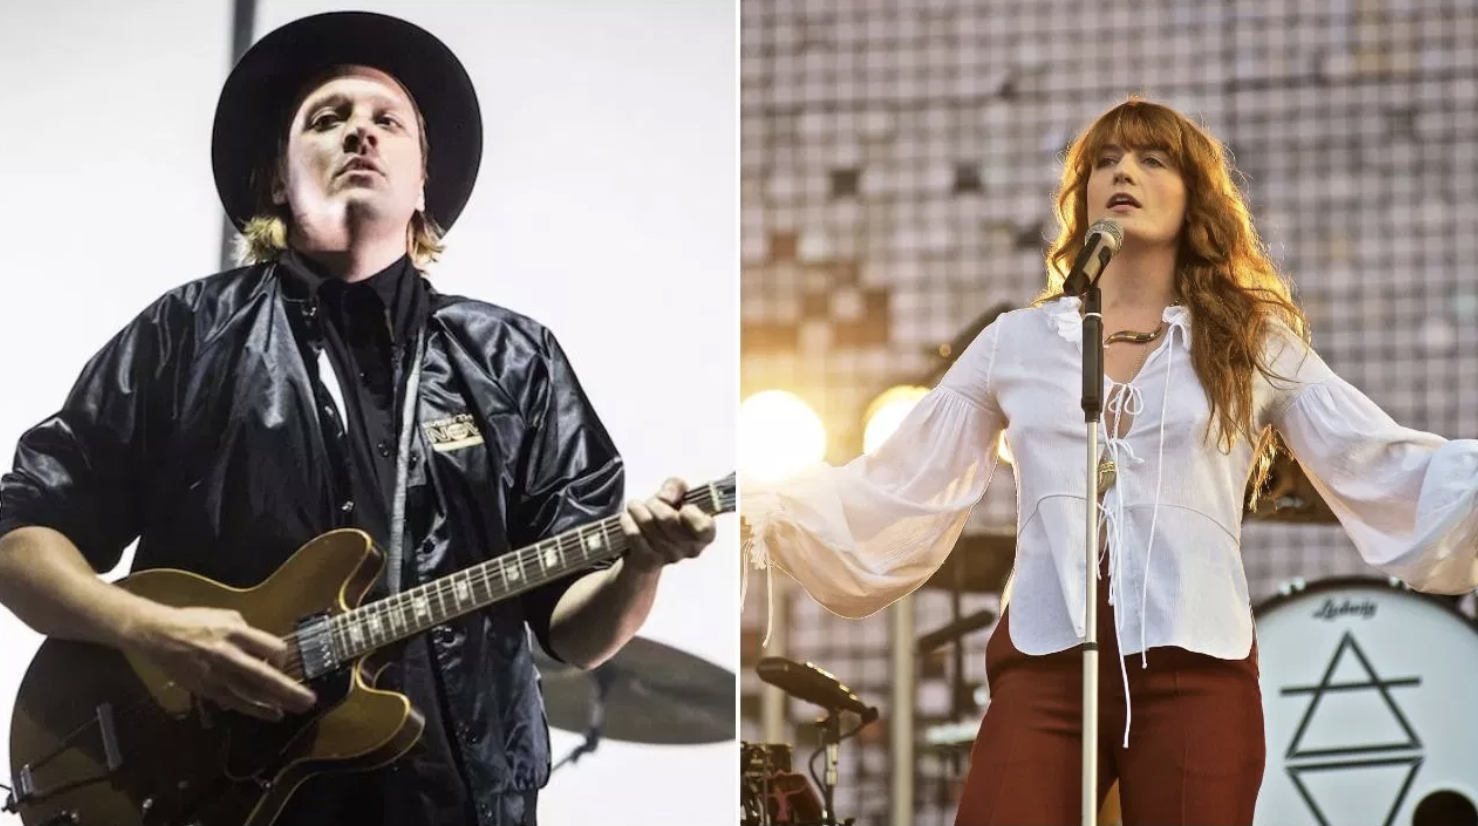 Arcade Fire and Florence Welch.Photo Credit: Philip Cosores and Robert Altman